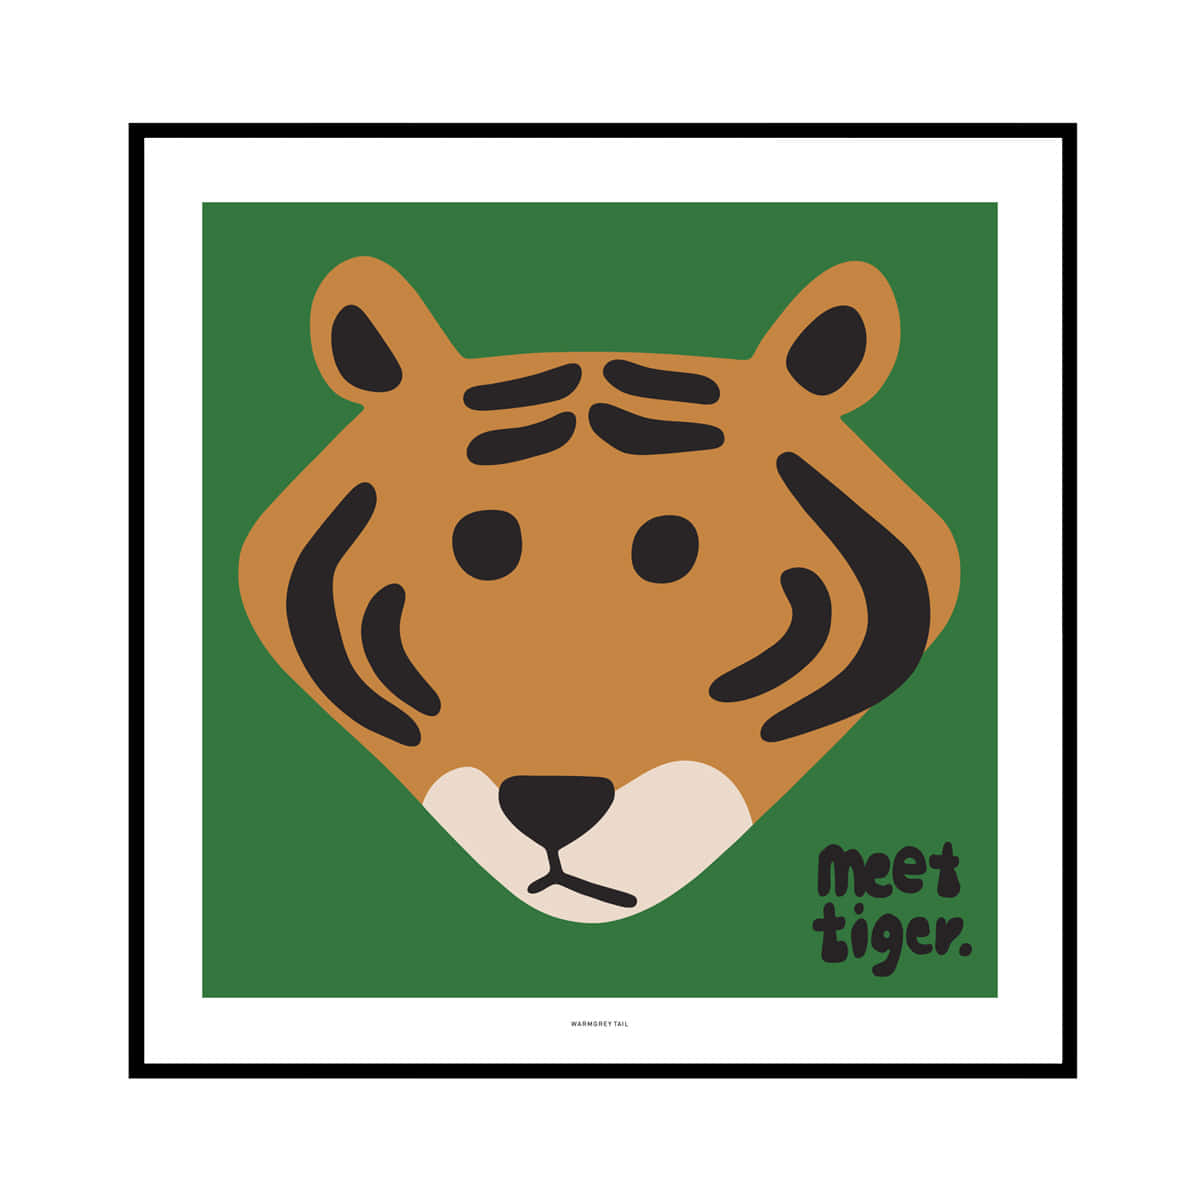 MEET TIGER - GREEN POSTER